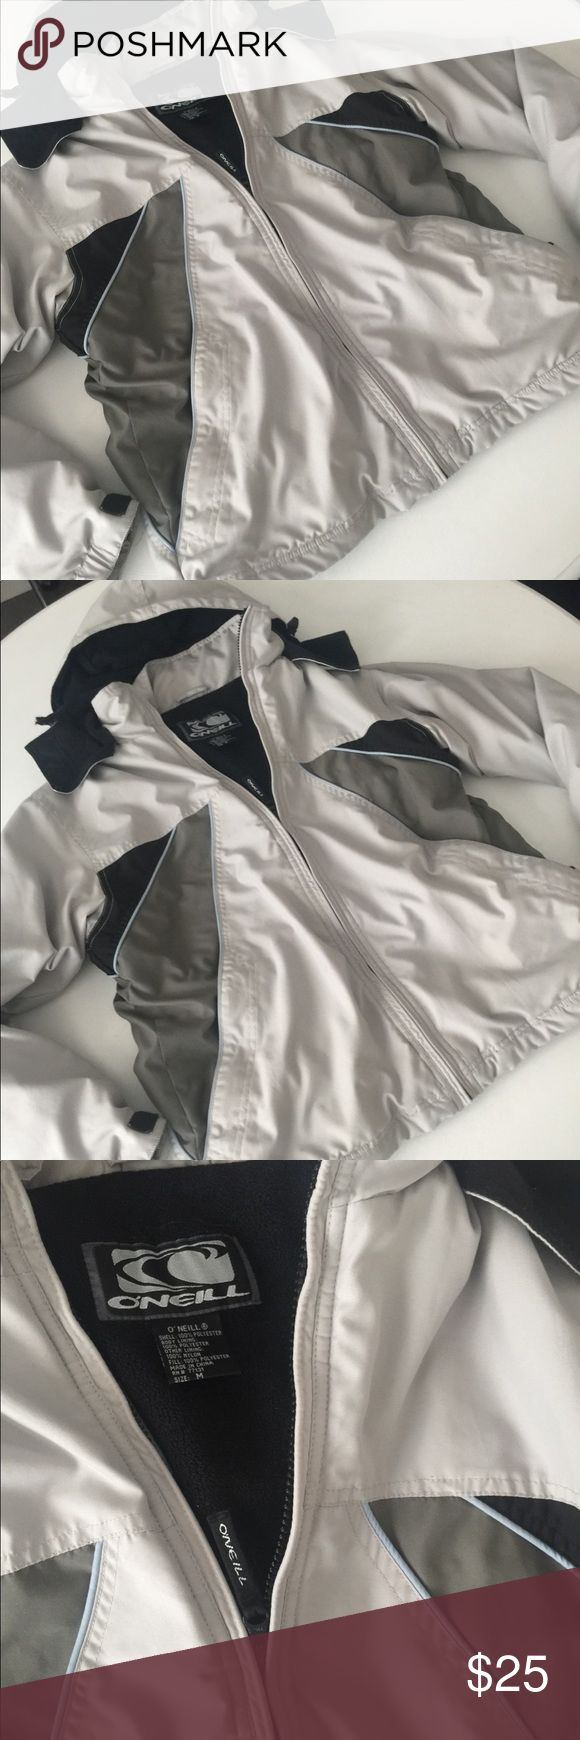 O'Neill ski/snow jacket! Size Medium O'Neill ski/snowboard jacket! Insulated. Hood. Size Medium. White, gray and black in color! Please note slight wear/ stain on left arm (it's on the backside of the arm) as shown in picture. O'Neill Jackets & Coats